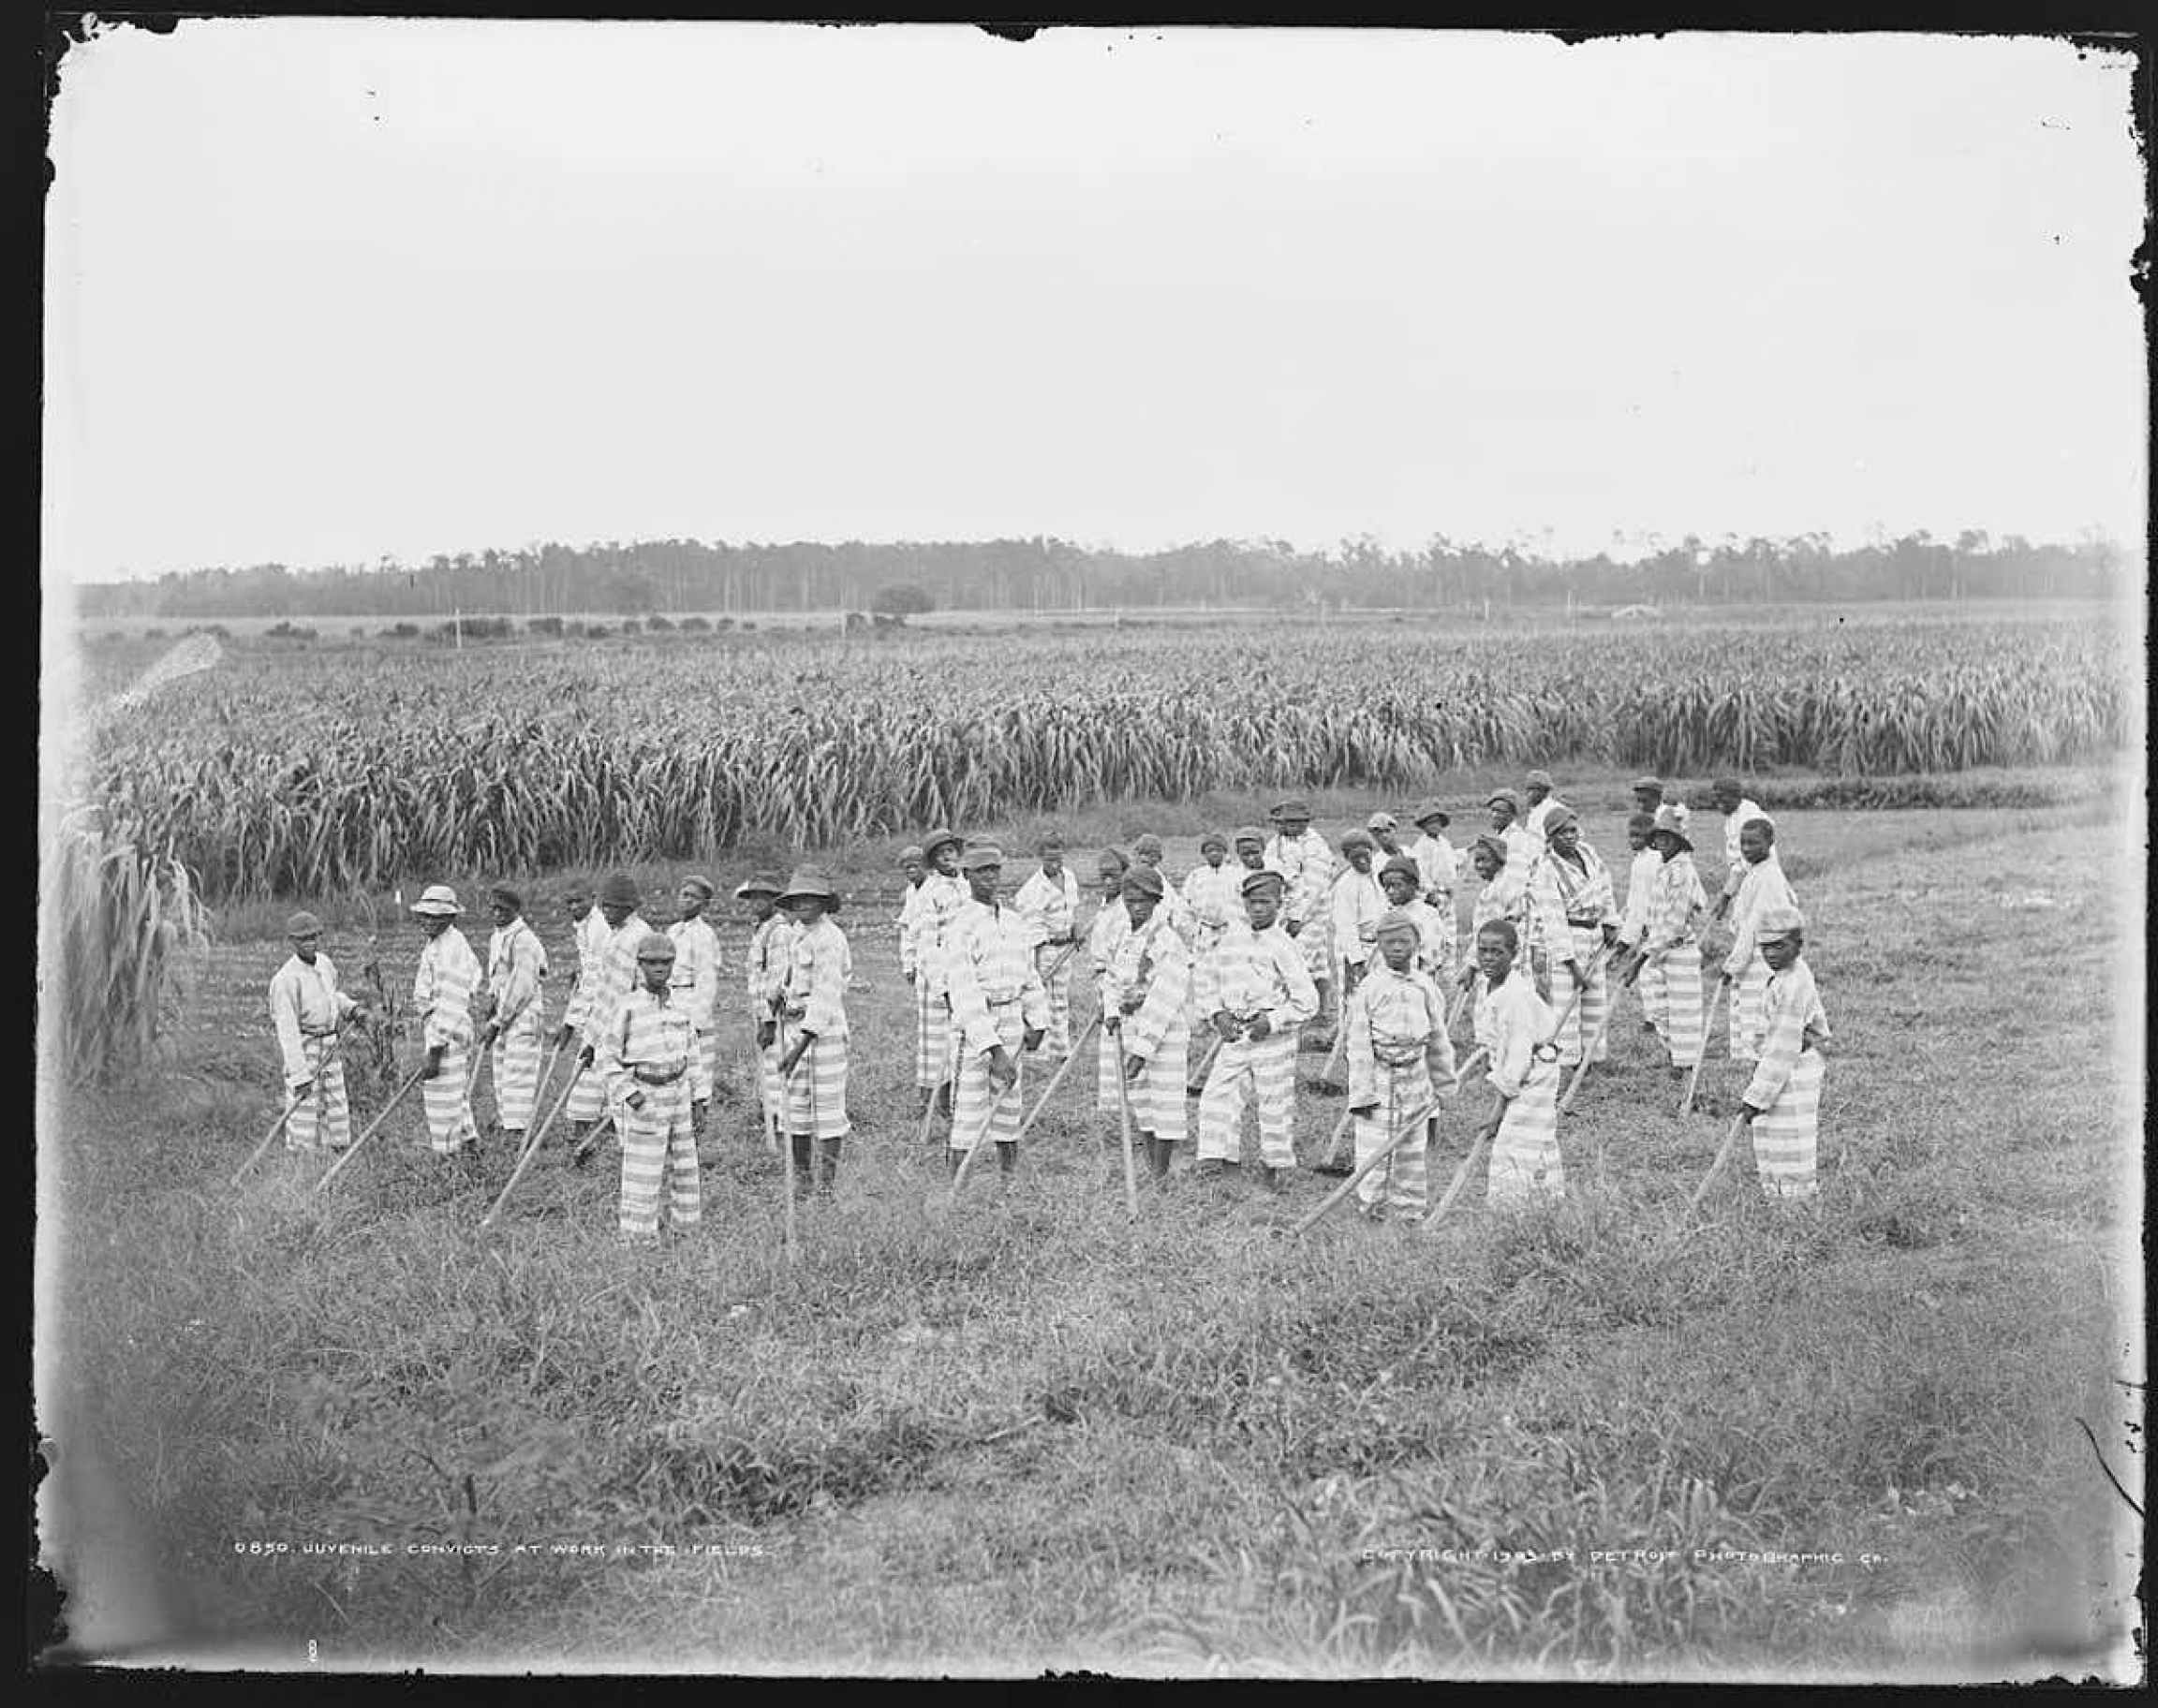 Juvenile convicts are shown at work in the fields, location unknown.